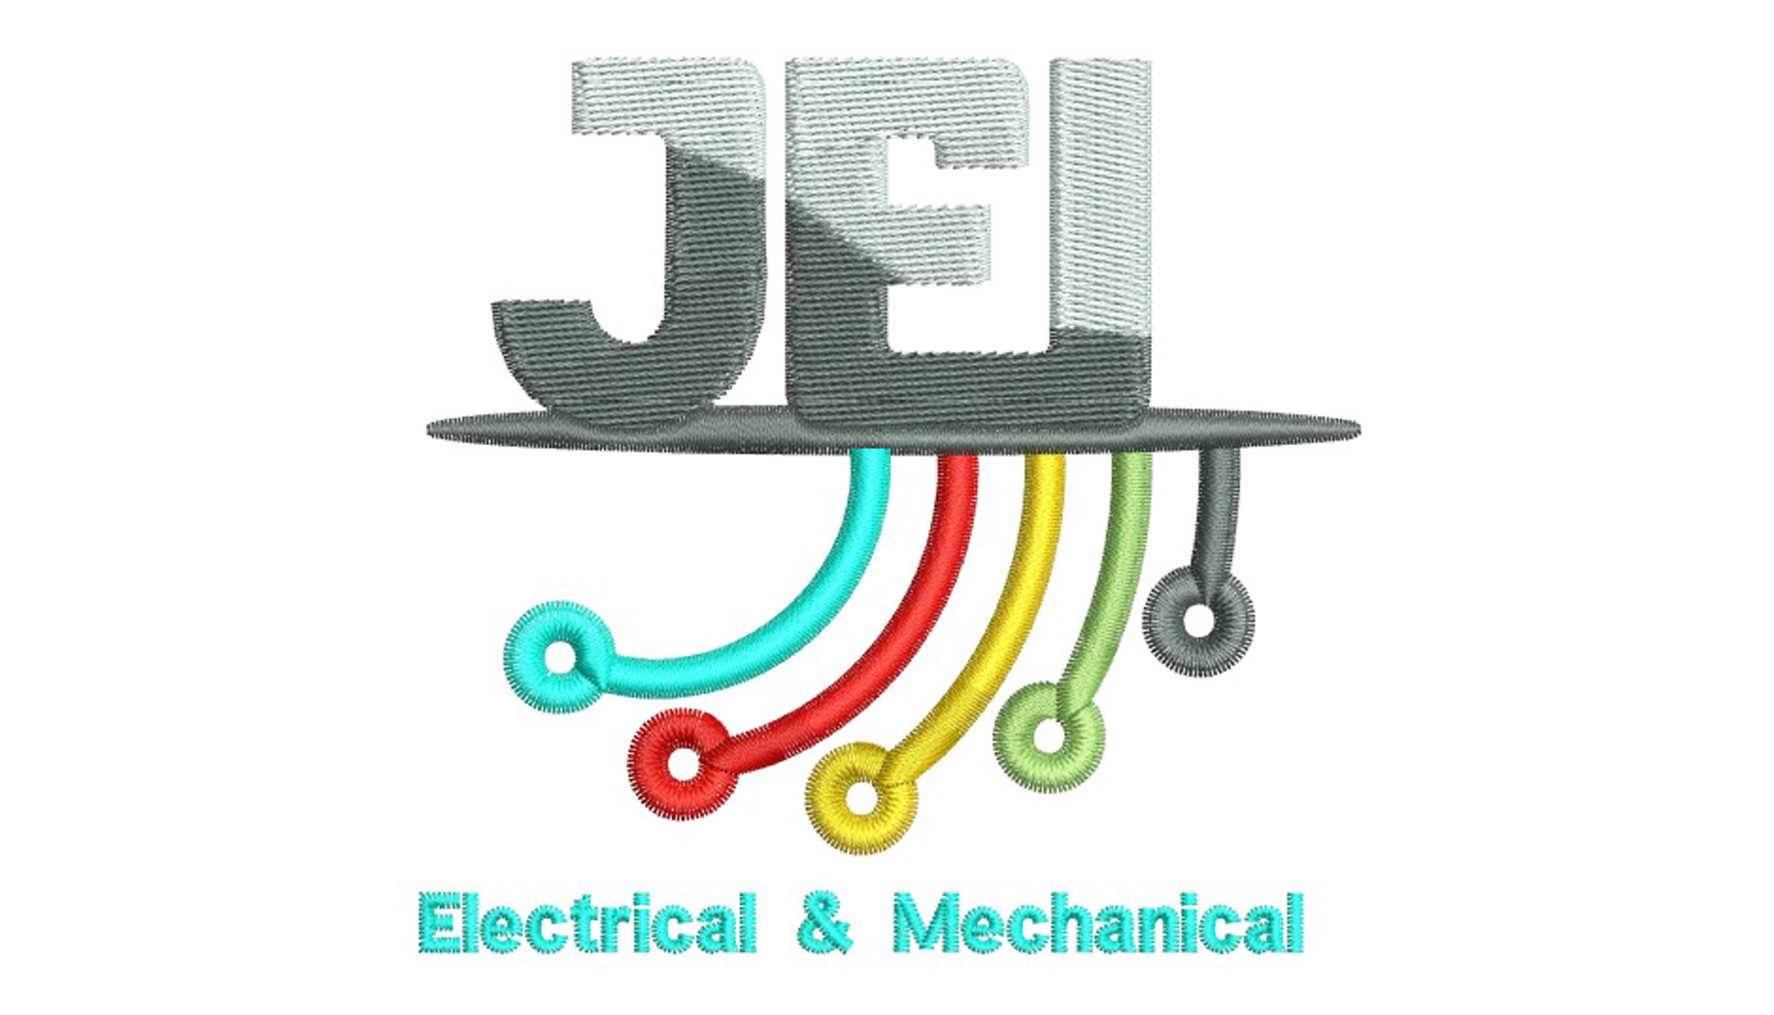 JEI Electrical & Mechanical